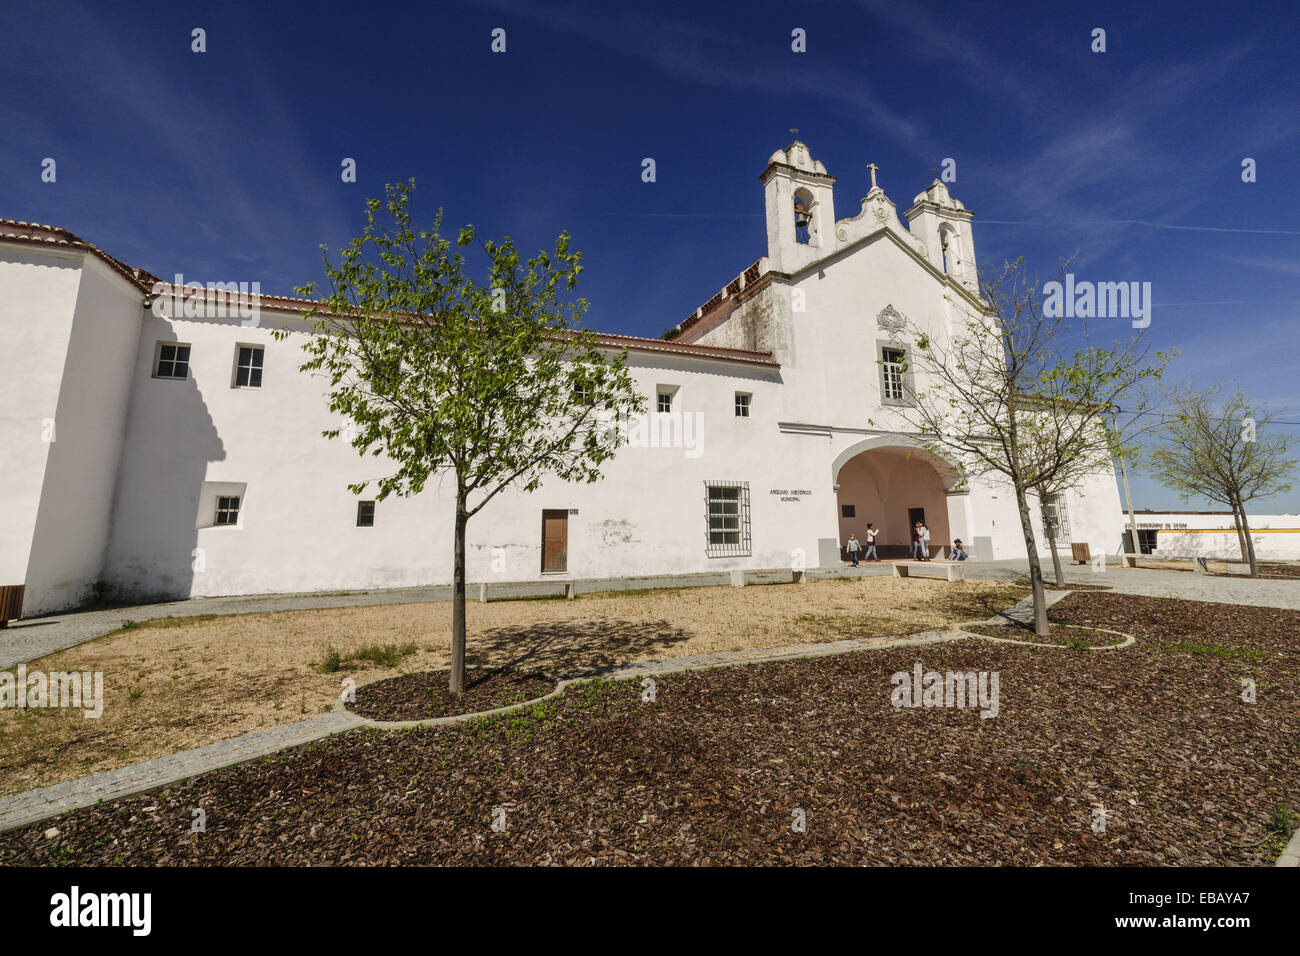 1500s 1591 16th century 21st century Alentejo architecture archive beginning build building built structure church - Stock Image